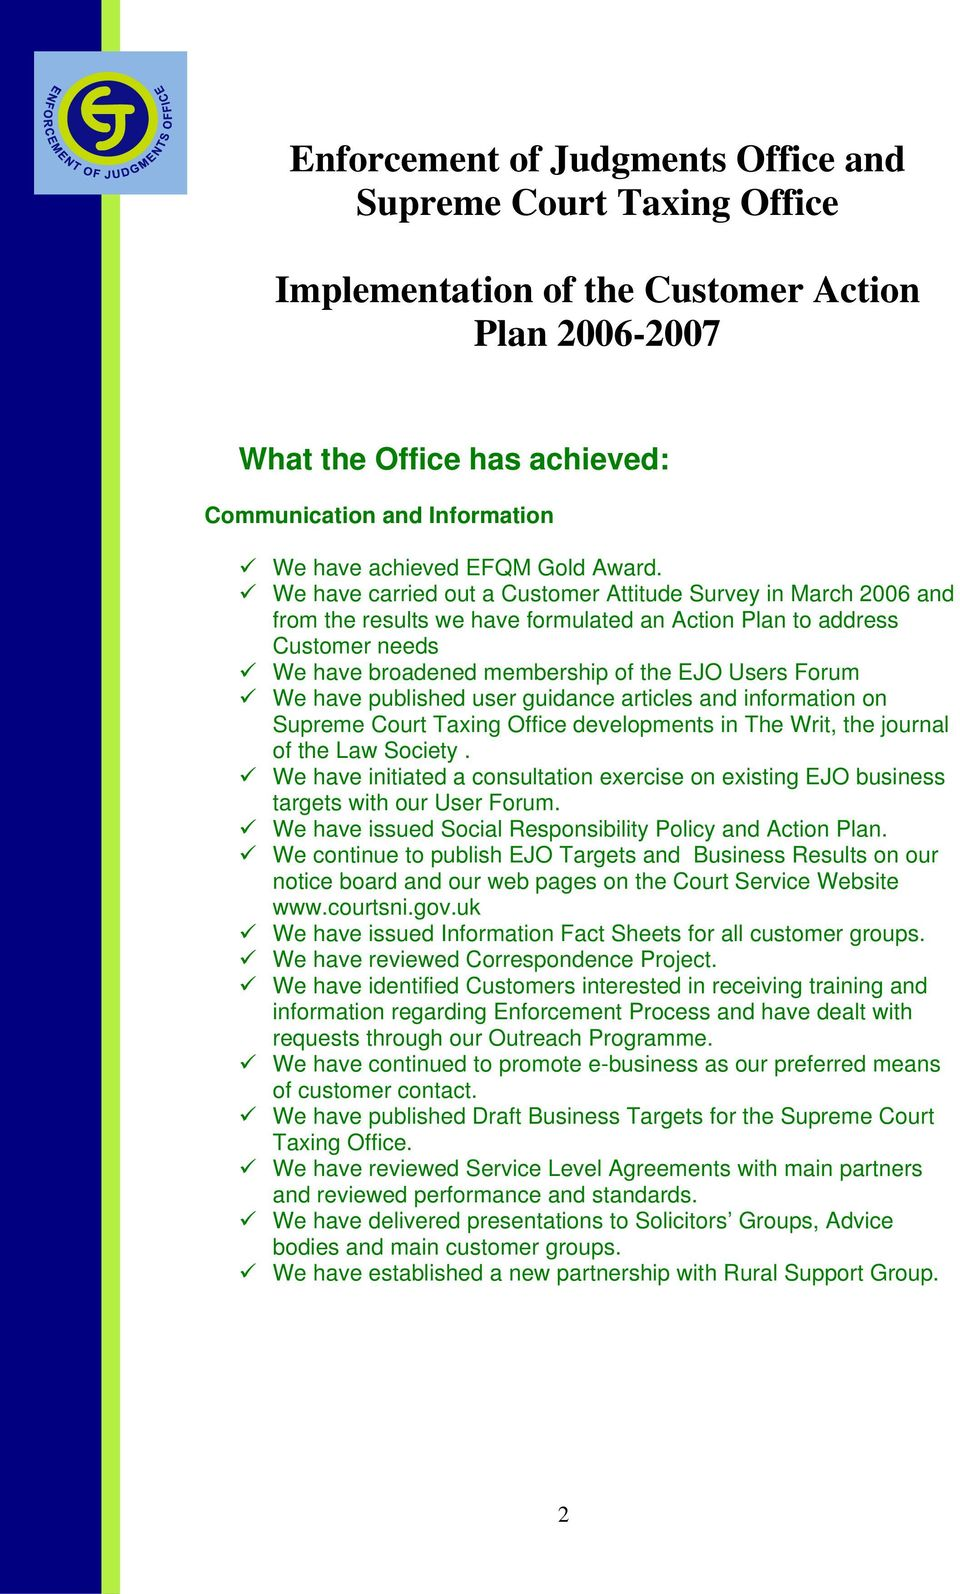 We have carried out a Customer Attitude Survey in March 2006 and from the results we have formulated an Action Plan to address Customer needs We have broadened membership of the EJO Users Forum We